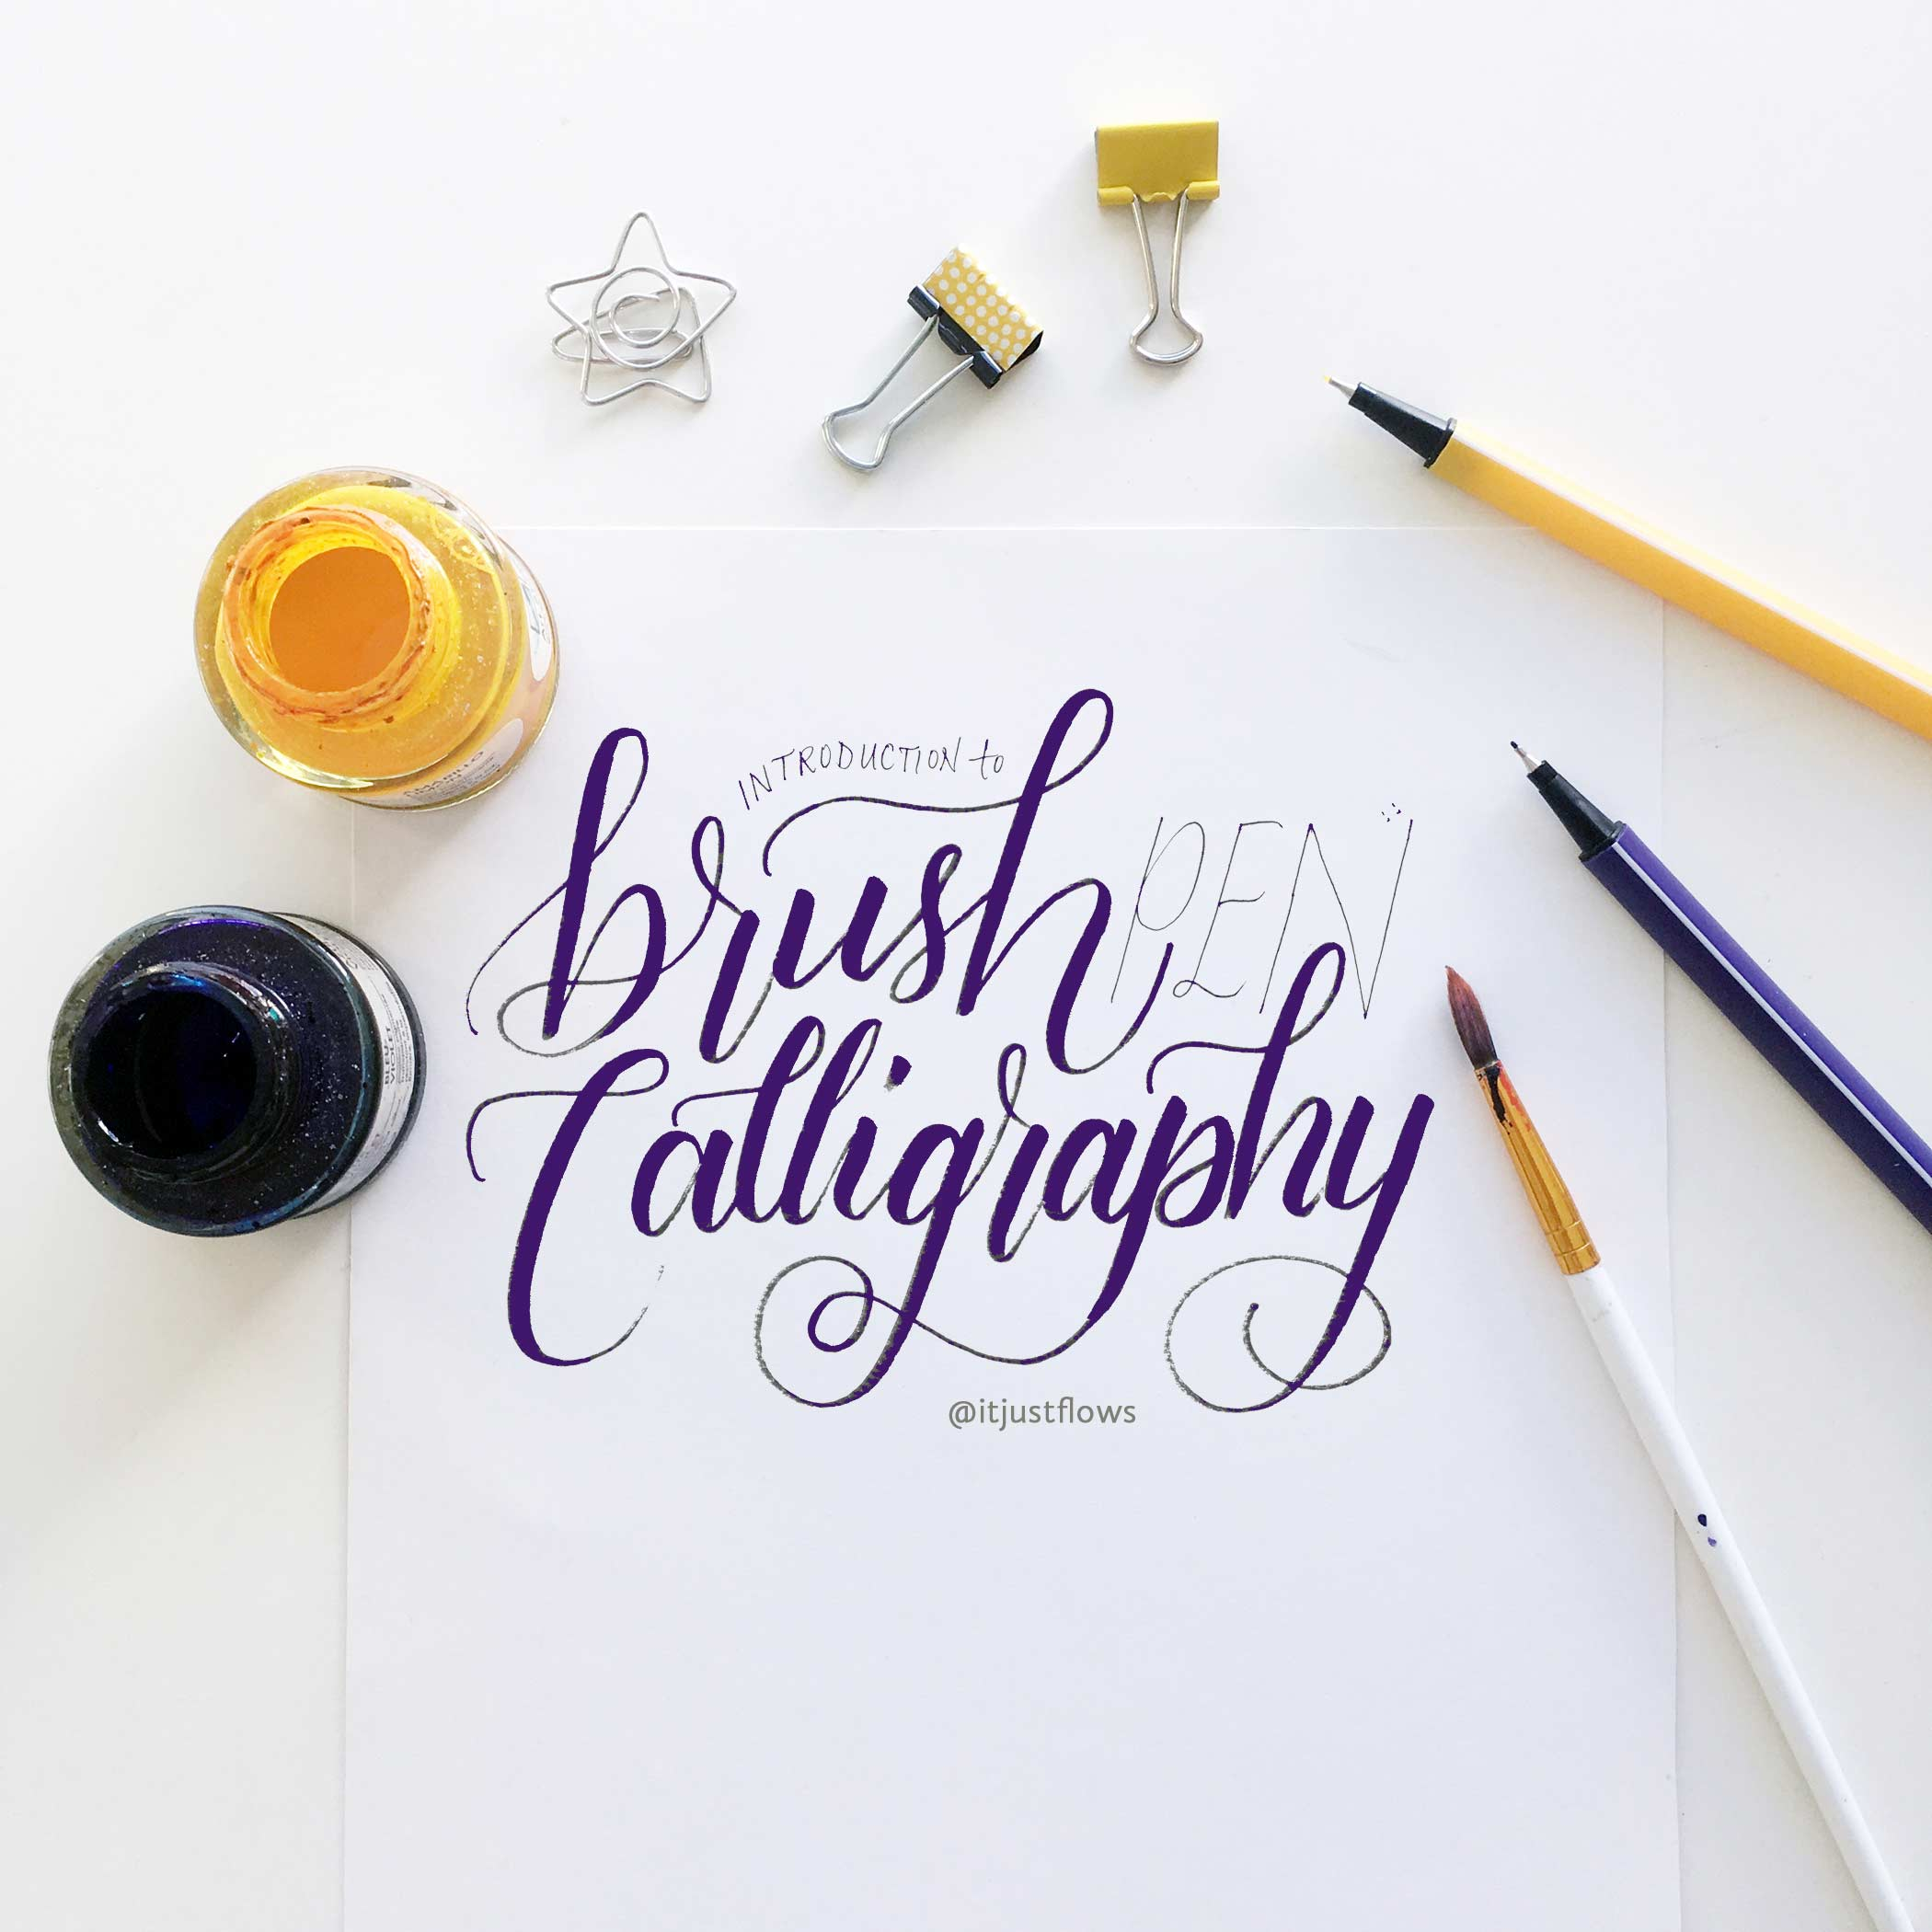 sq-white-BRUSH-purple-calligraphy-itjustflows-web.jpg